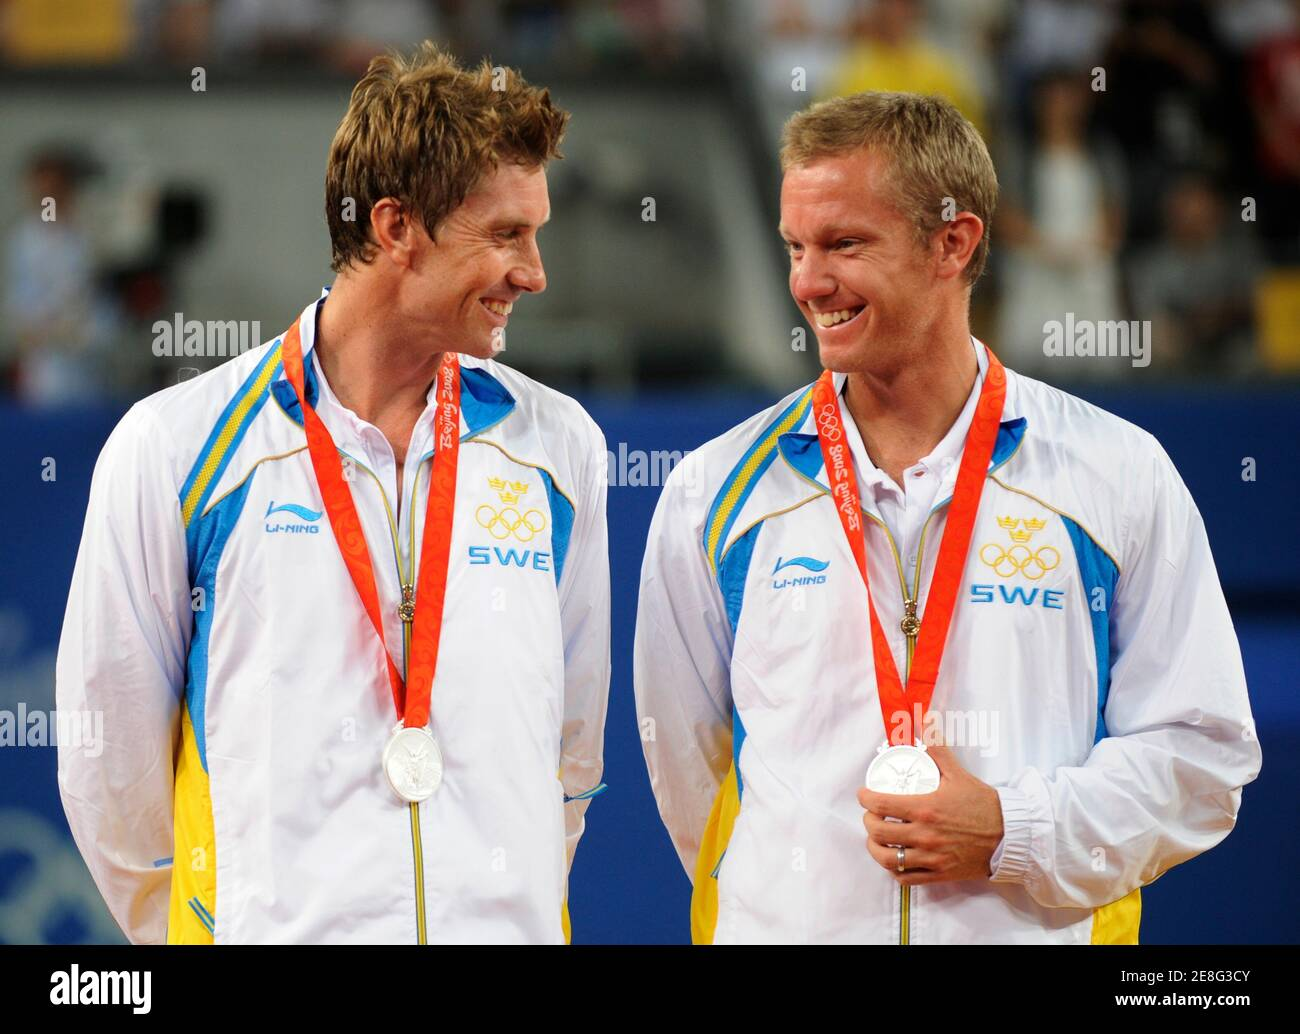 Silver medallists Simon Aspelin (L) and Thomas Johansson from Sweden stand on the podium during the medal ceremony for the men's tennis doubles at the Beijing 2008 Olympic Games August 16, 2008.  REUTERS/Claro Cortes Iv (CHINA) Banque D'Images